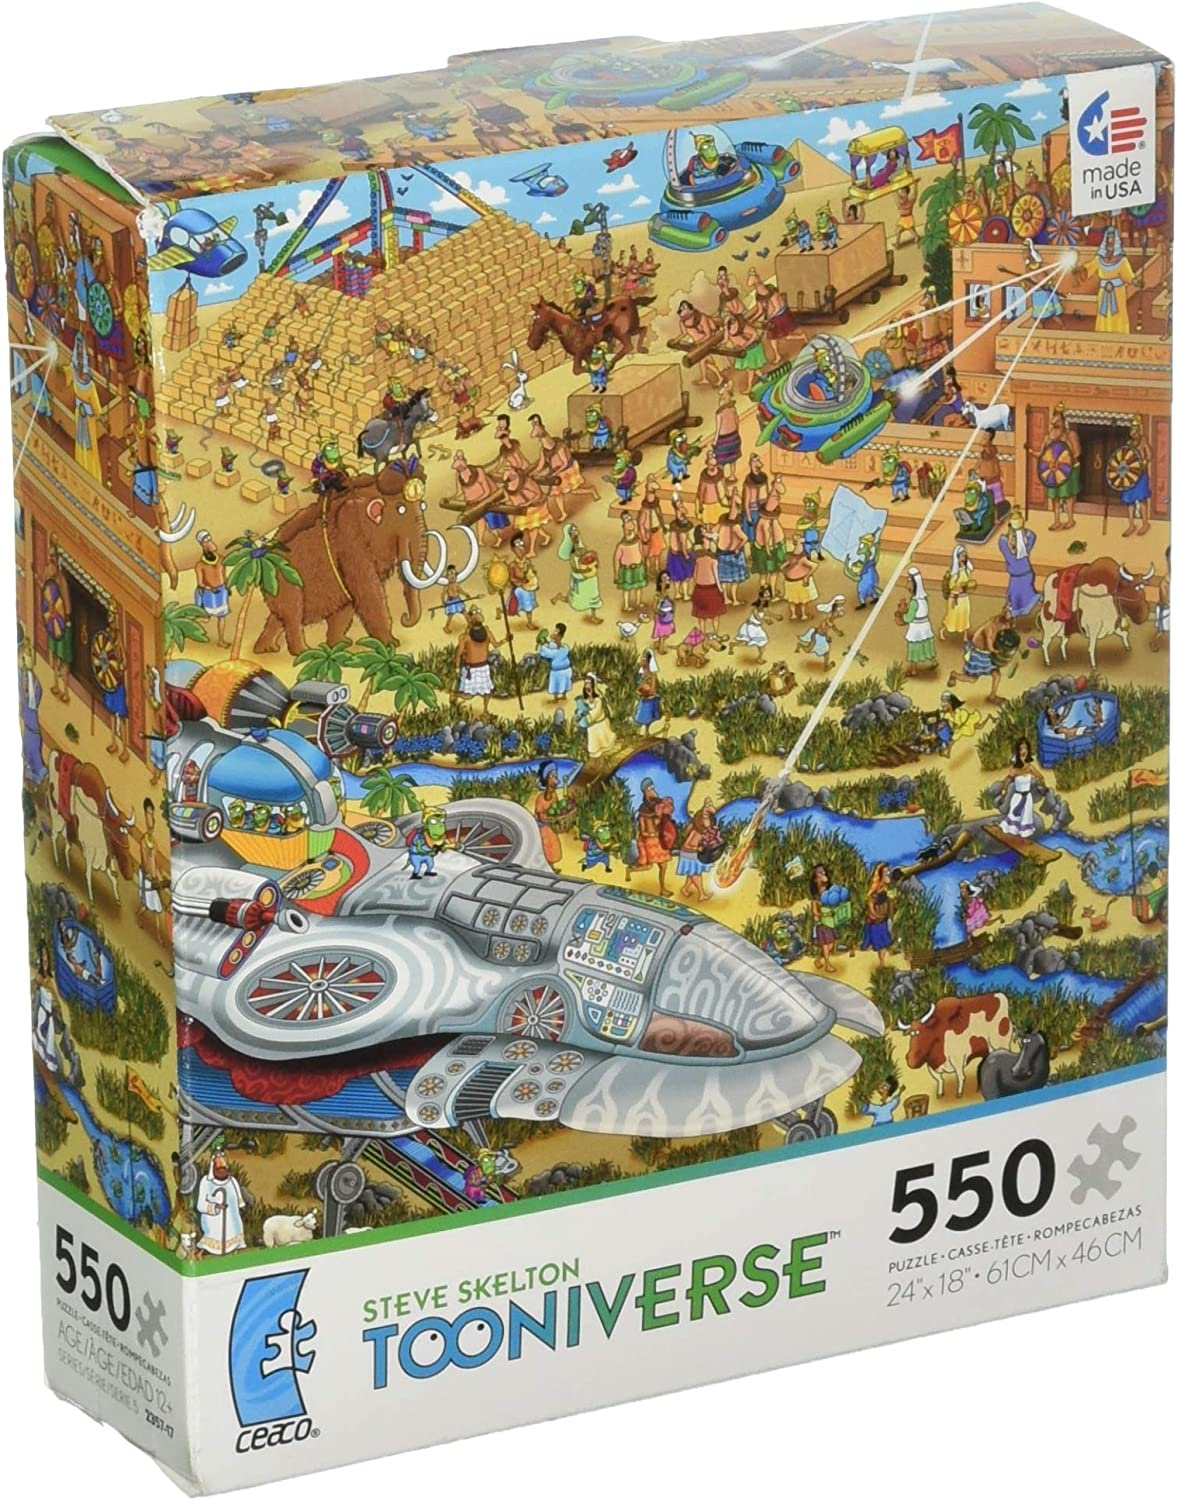 Games  Ceaco  550 Piece Tooniverse Building the Pyramids Kids New Toys 23572